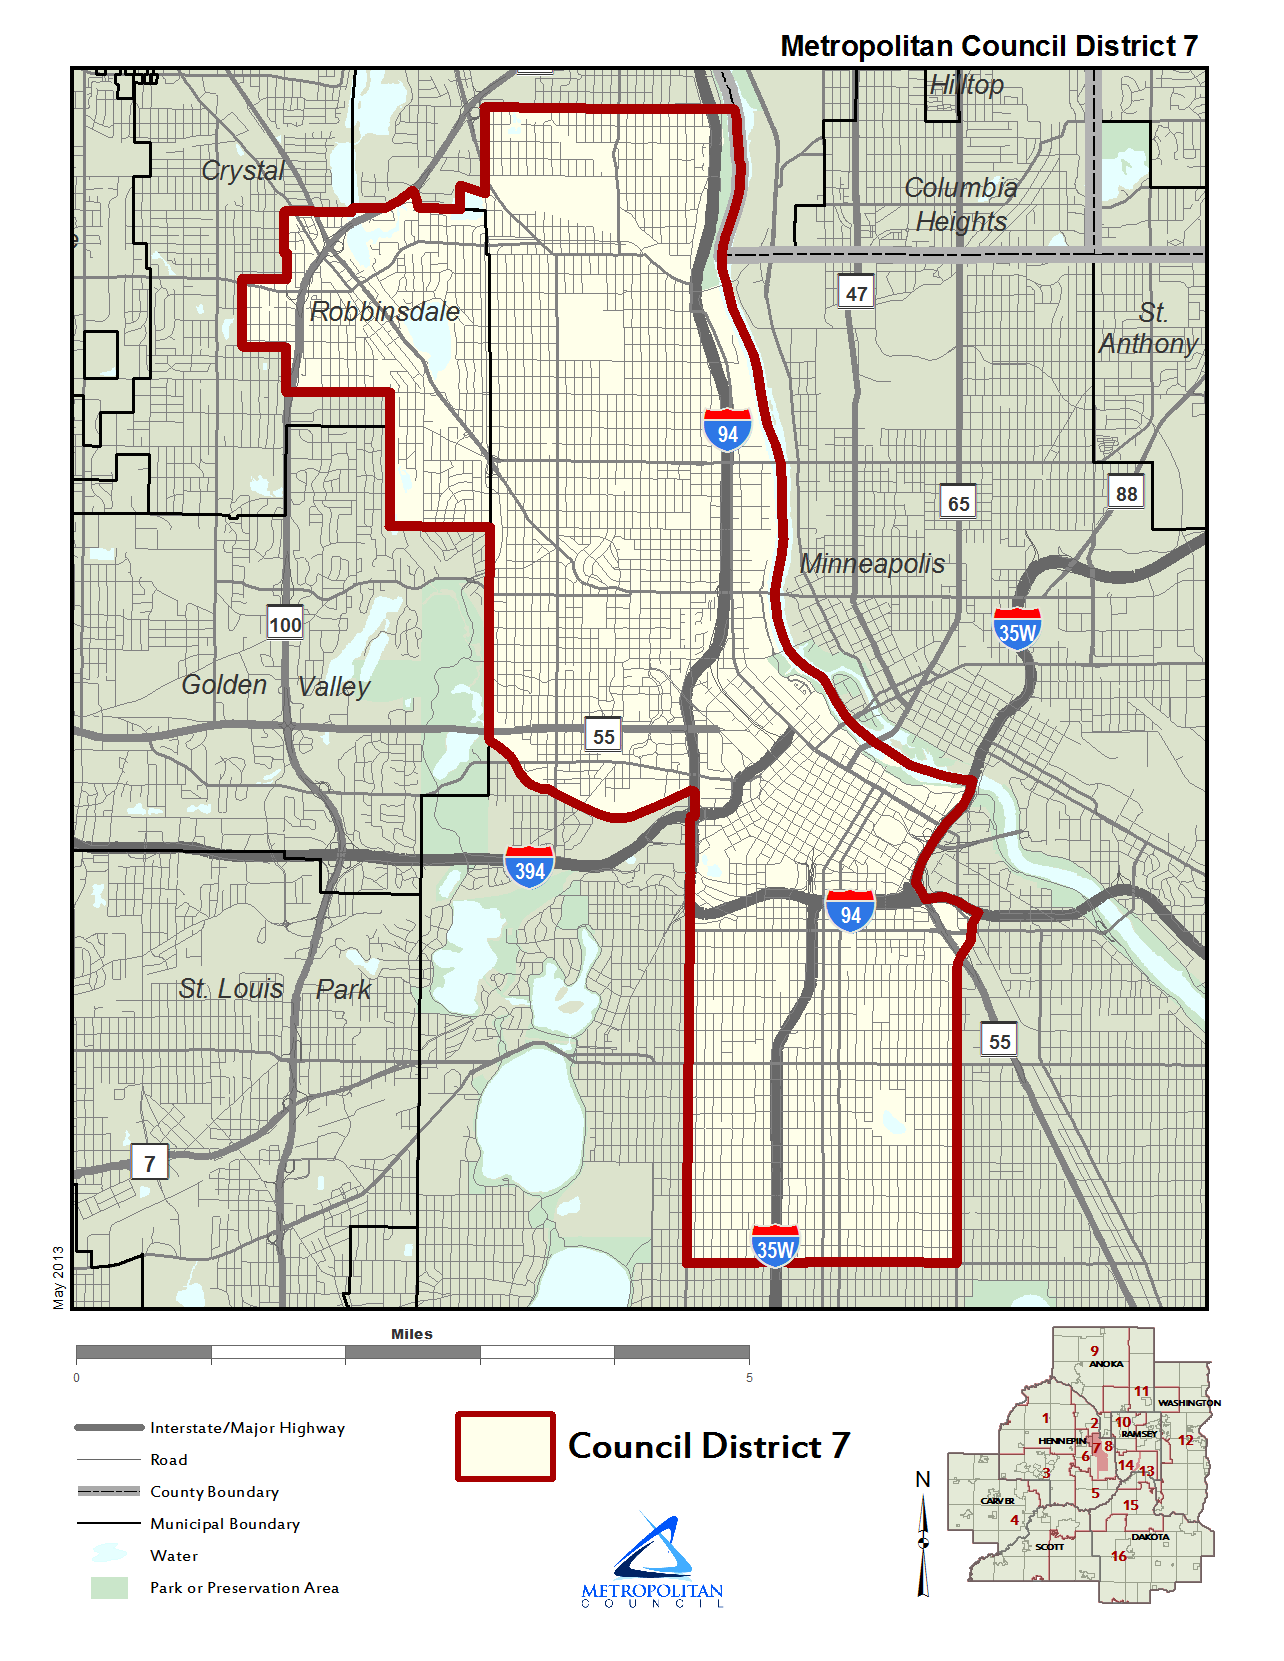 Metropolitan Council District 7 map